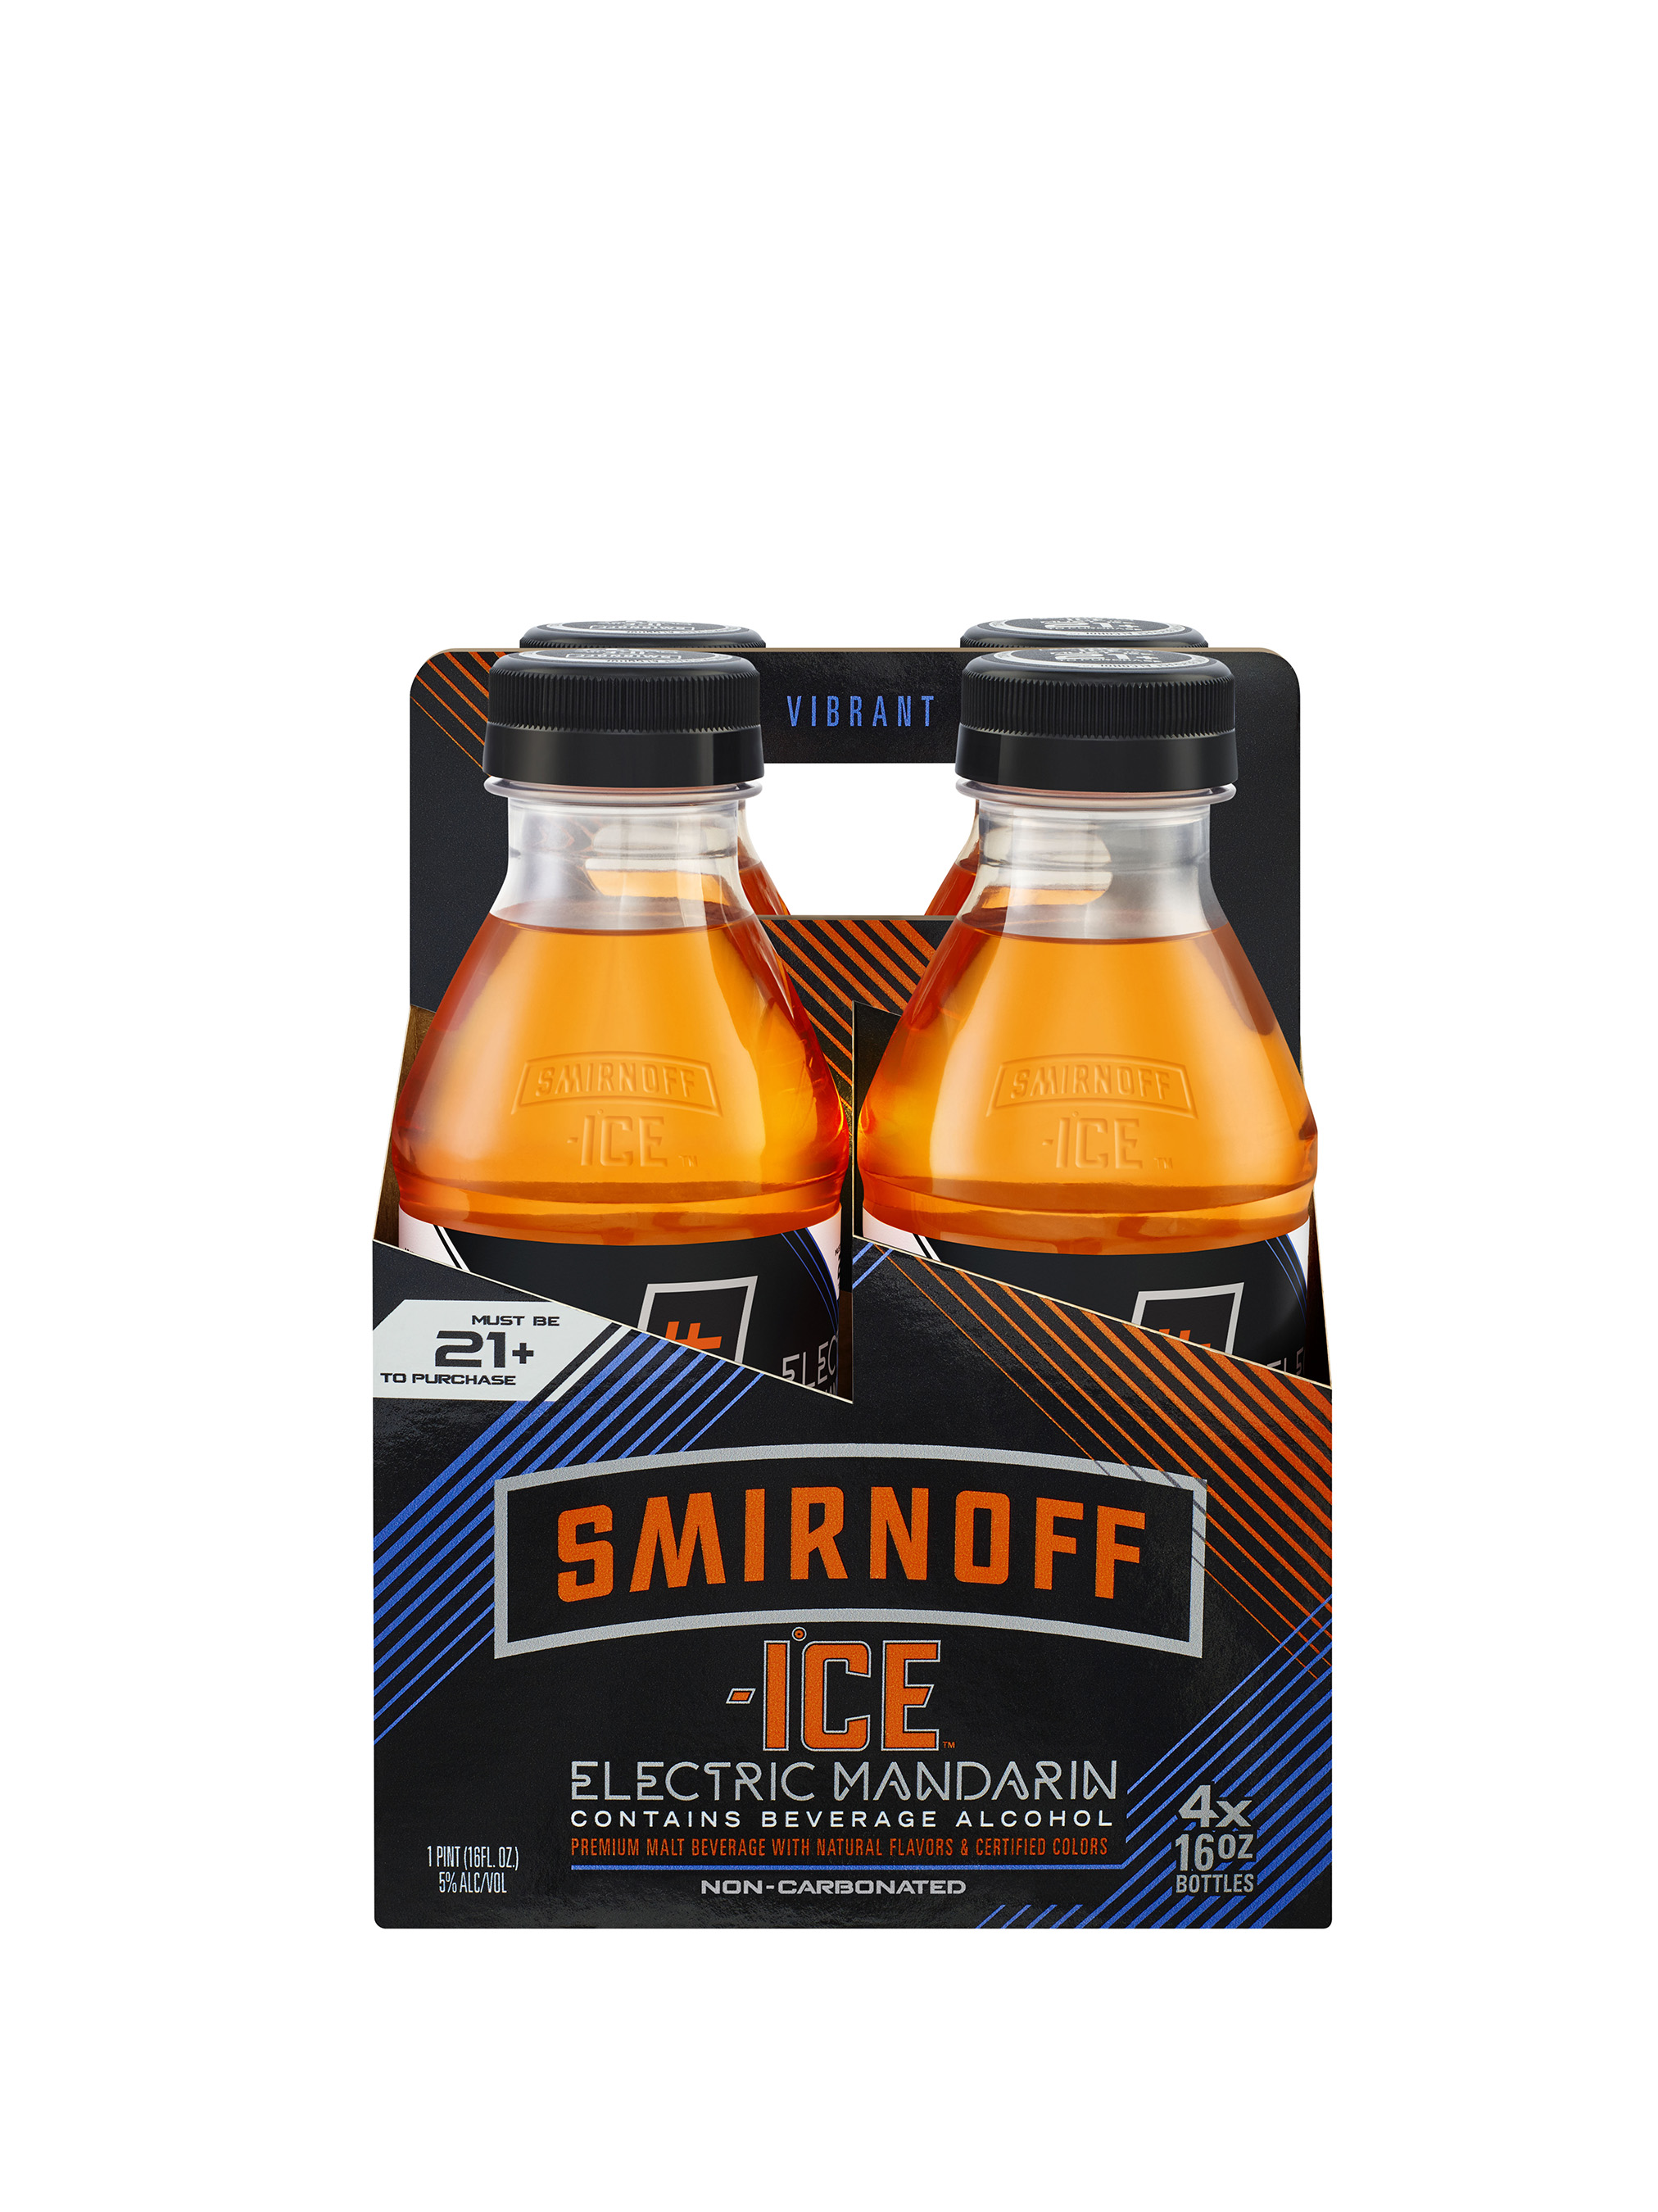 Smirnoff Ice Quot Keeps It Moving Quot With Its Latest Campaign To